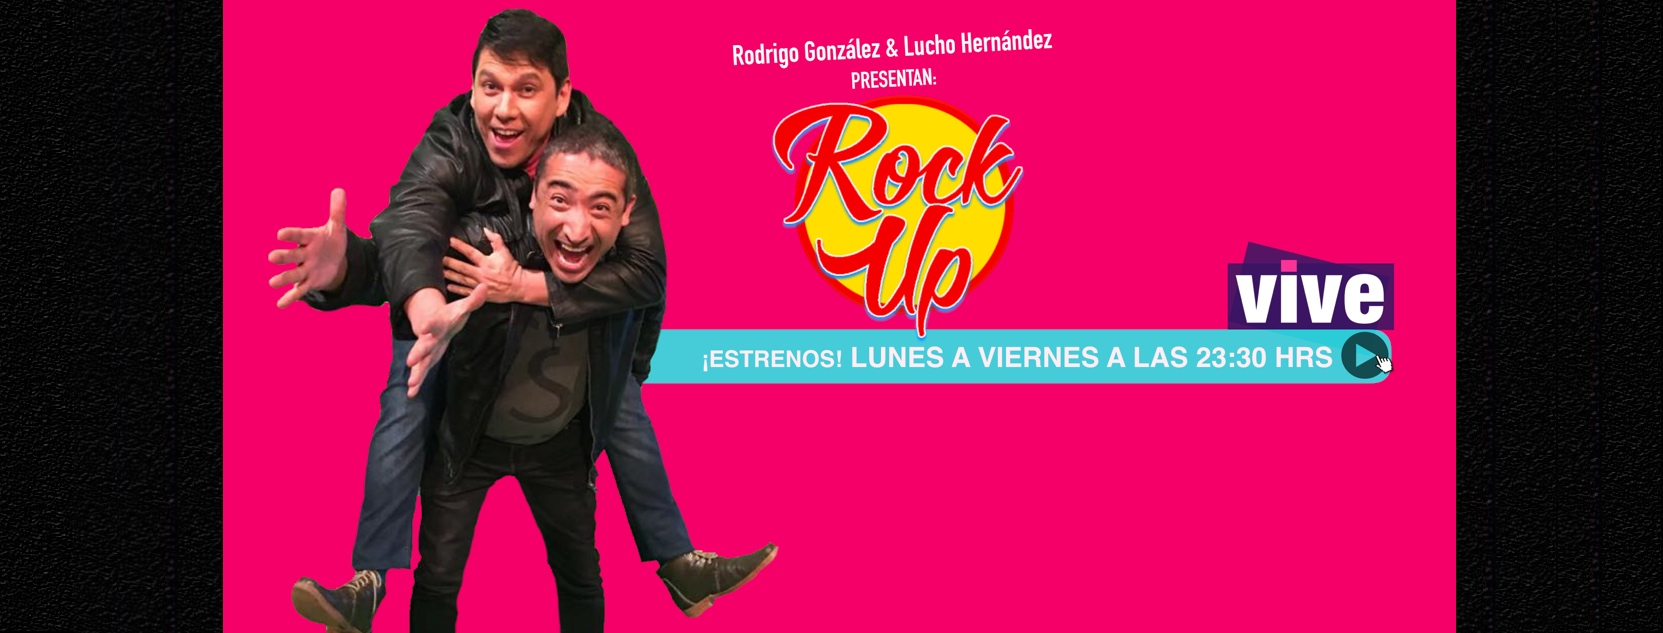 rock-up1